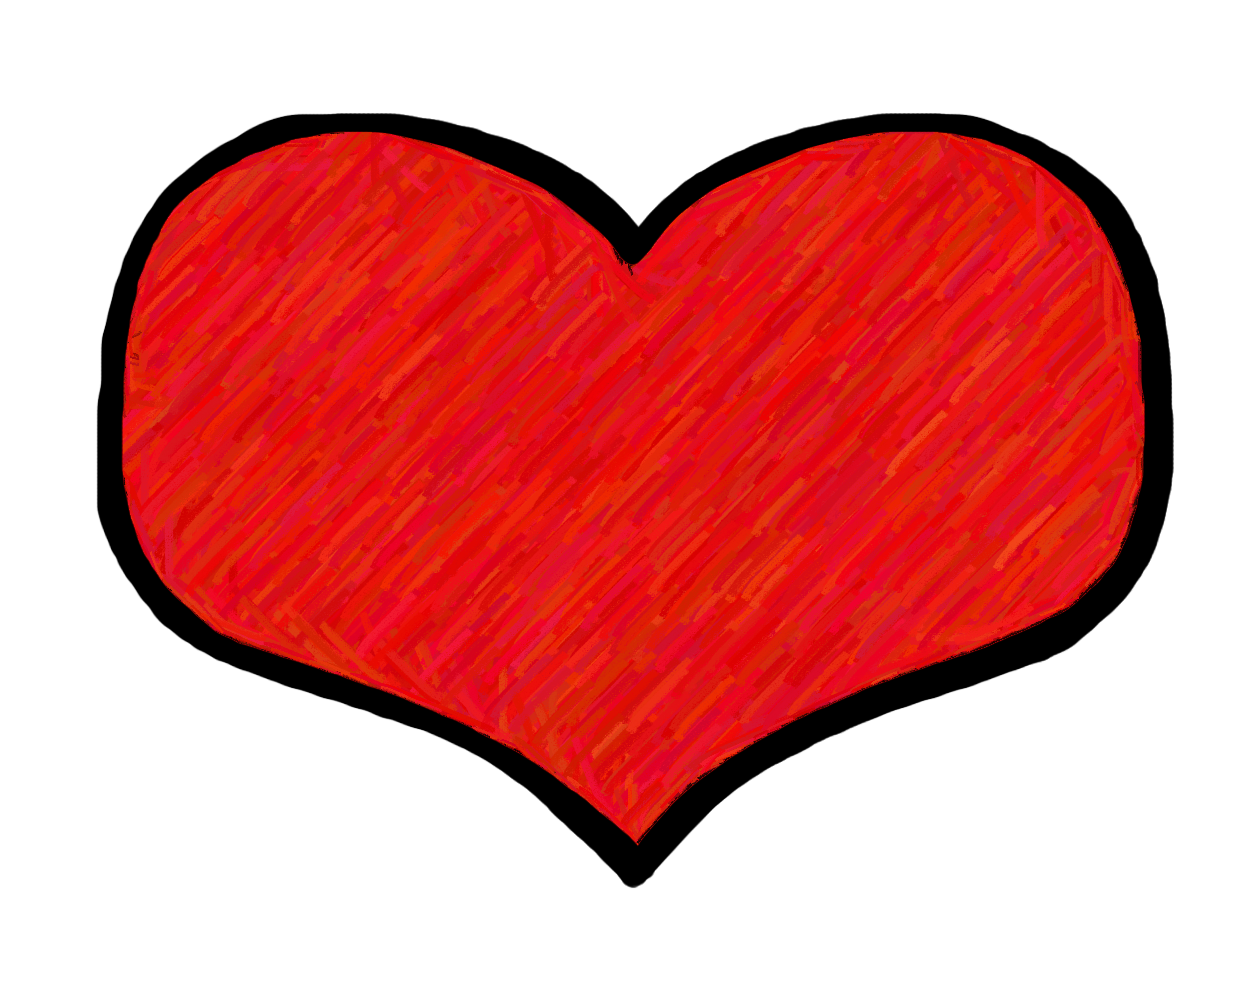 Hearts clip art images image 2